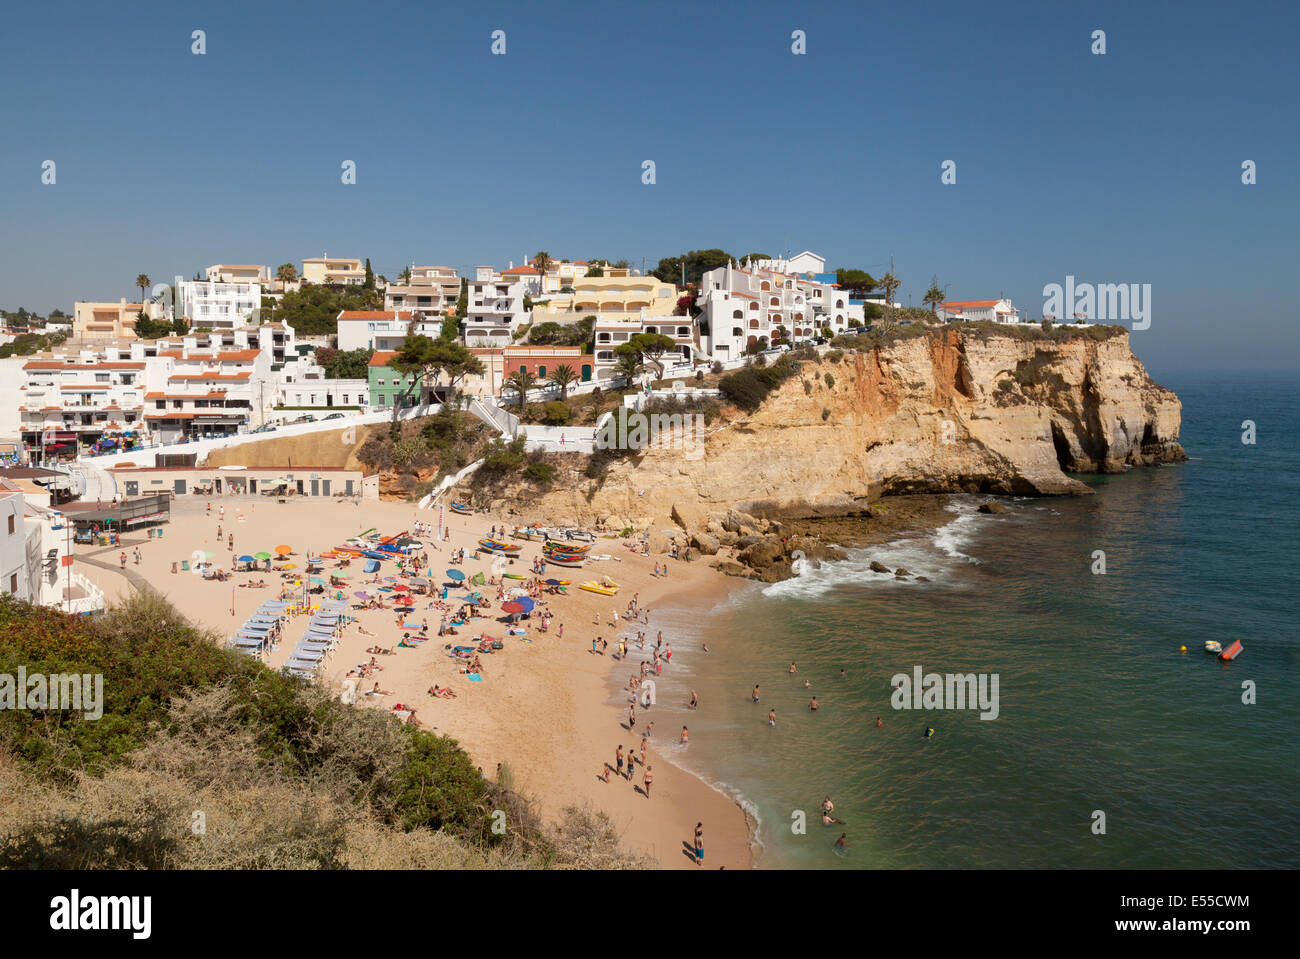 Carvoeiro town and beach in summer, Algarve, Portugal Europe Stock Photo